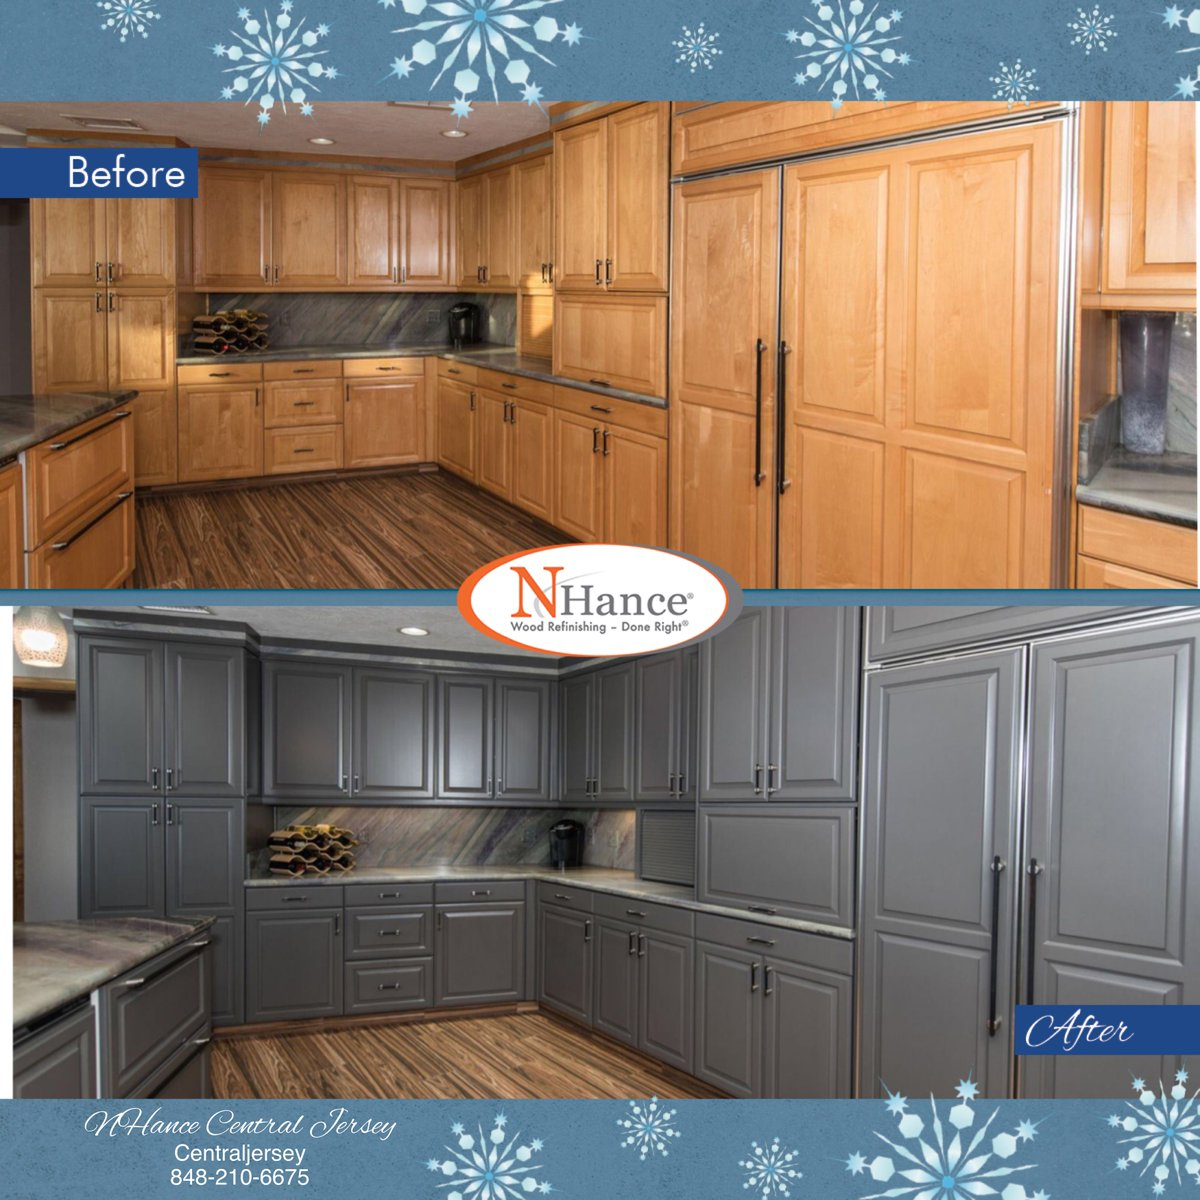 Kitchen Cabinet Refinishing Lancaster Pa Nhance Cabinets Jacksonville Review Home Decor